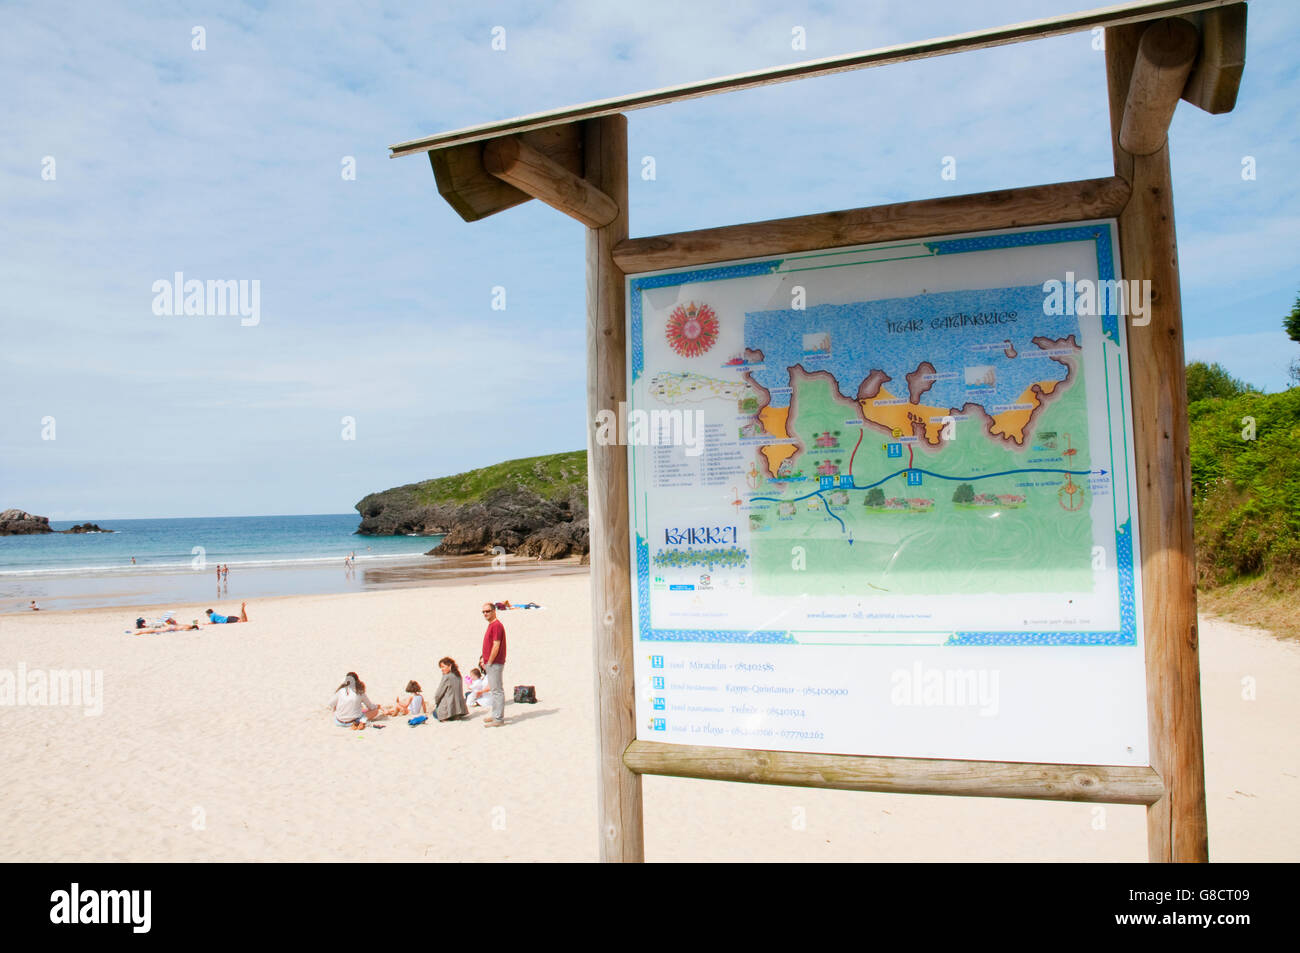 Barro beach. Barro, Asturias, Spain. - Stock Image